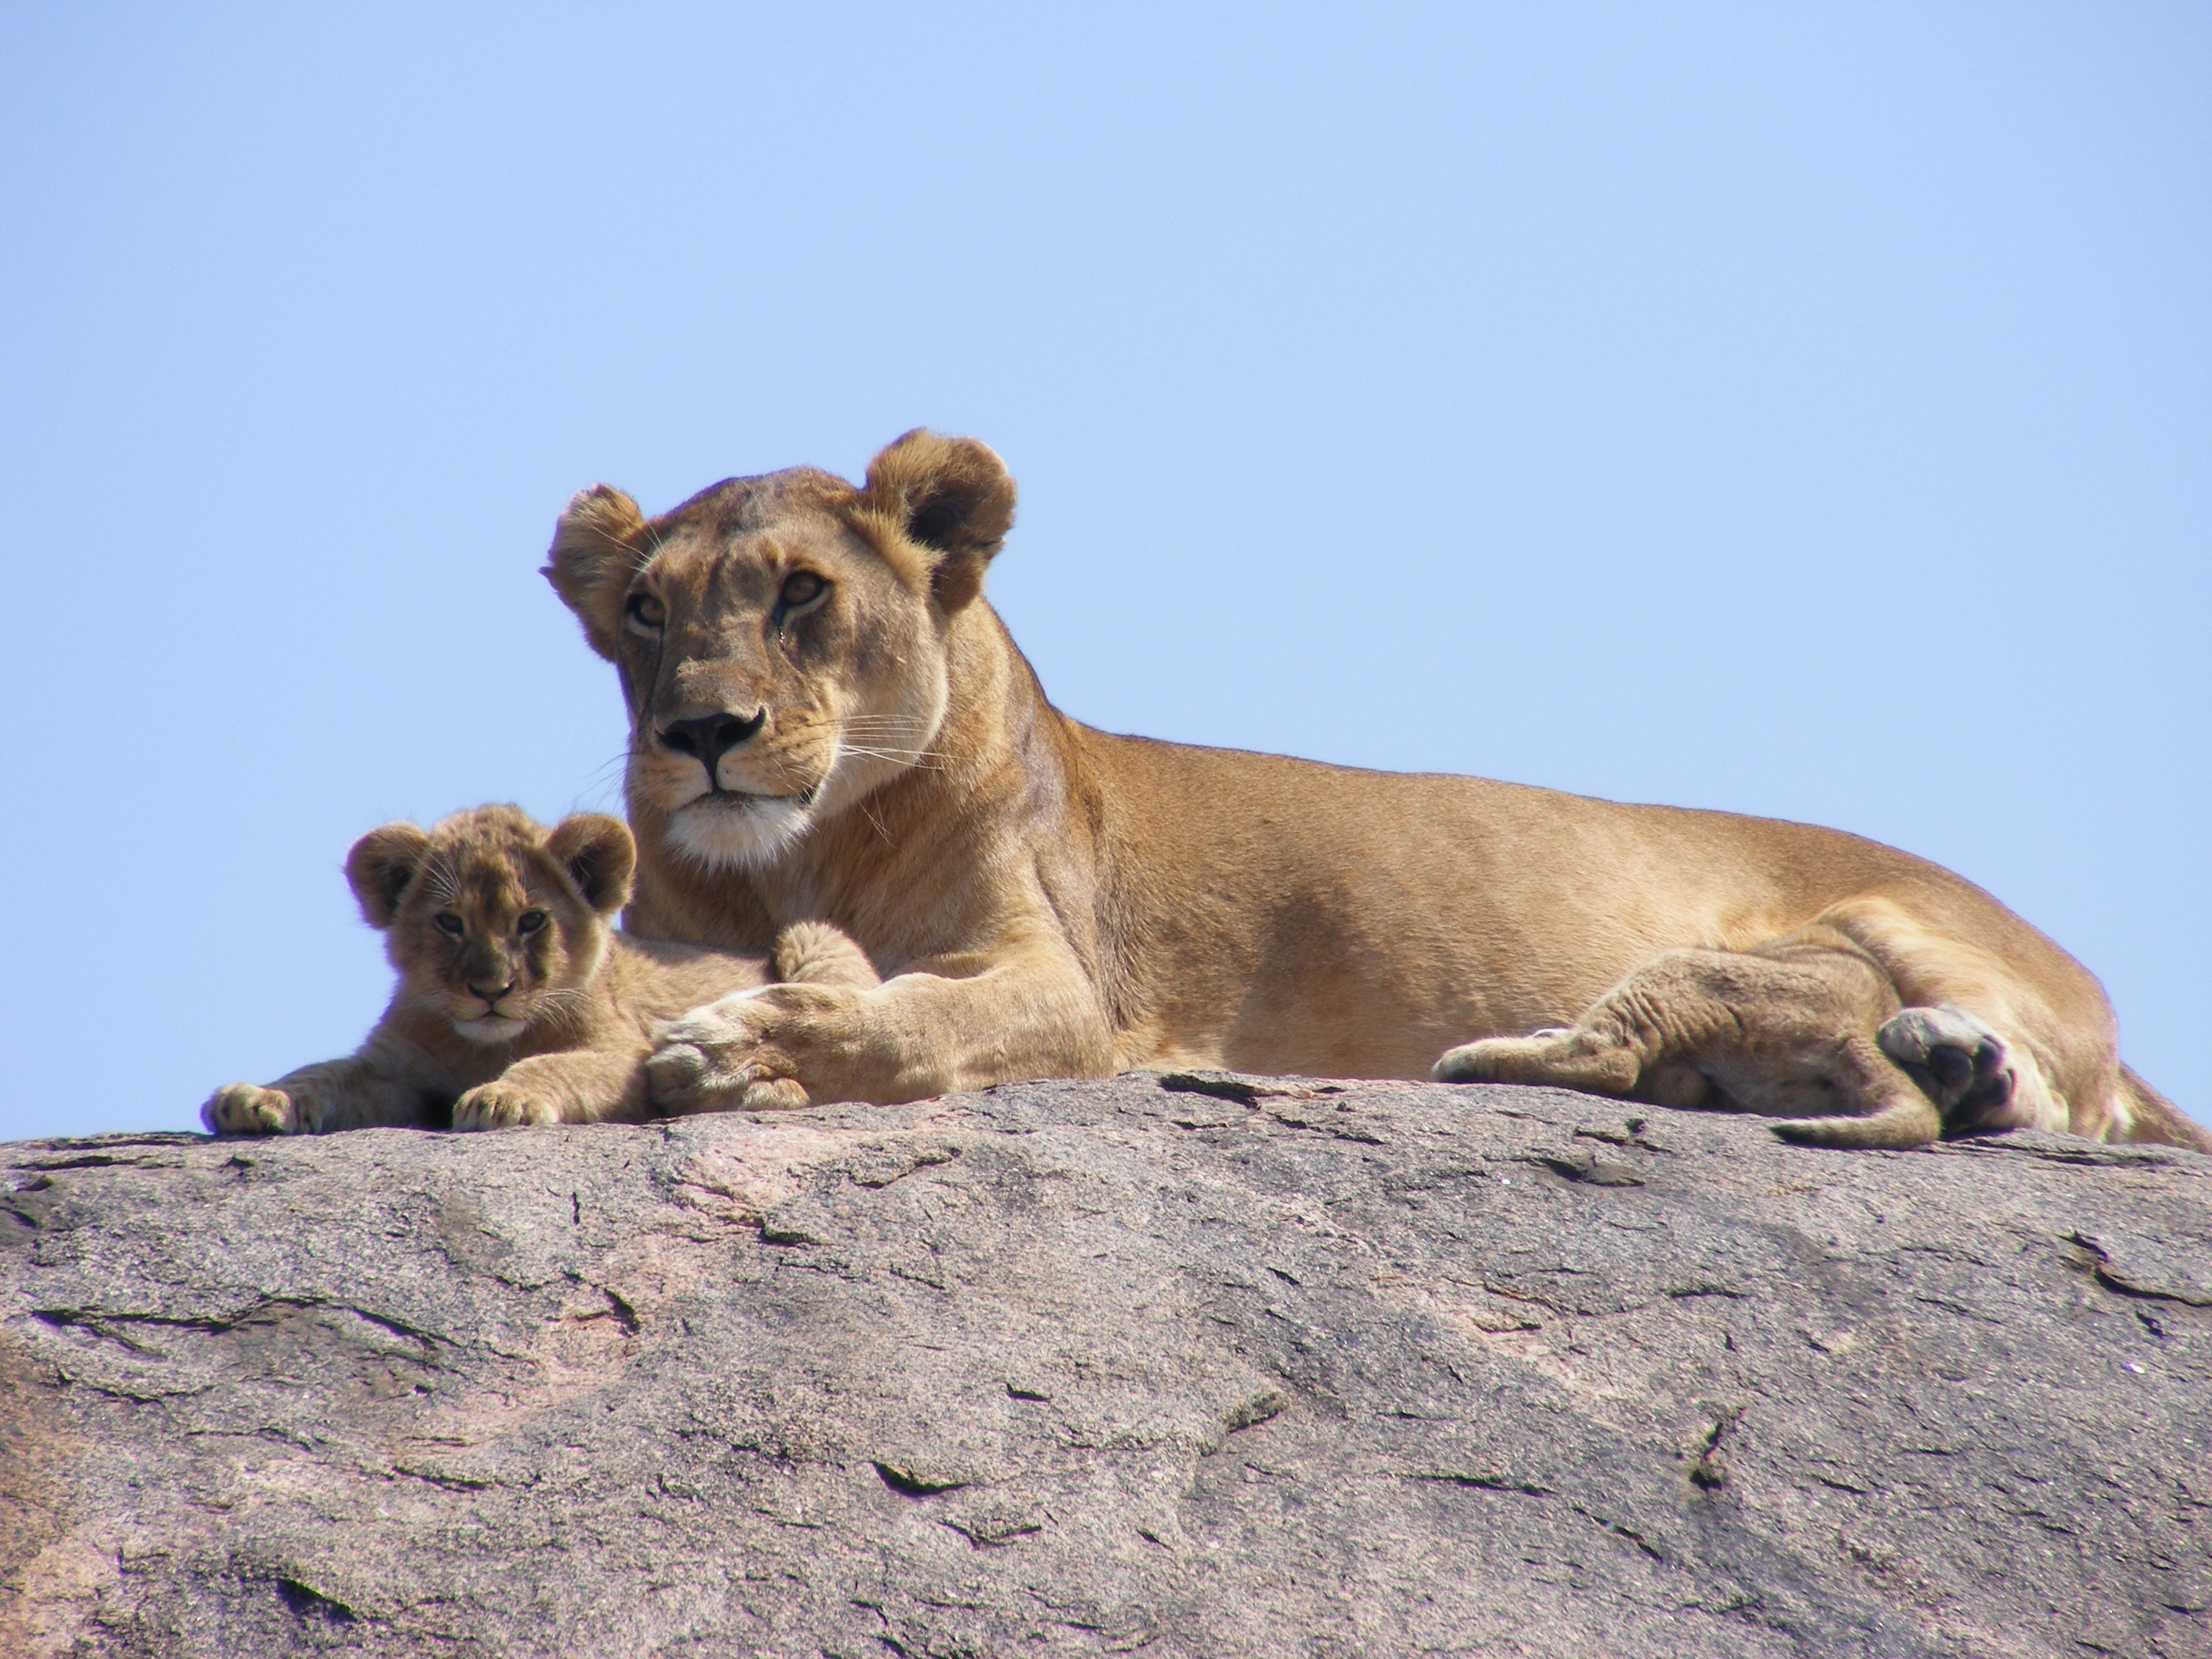 60536 download wallpaper Animals, Africa, Safari, Young, Joey, Lions screensavers and pictures for free